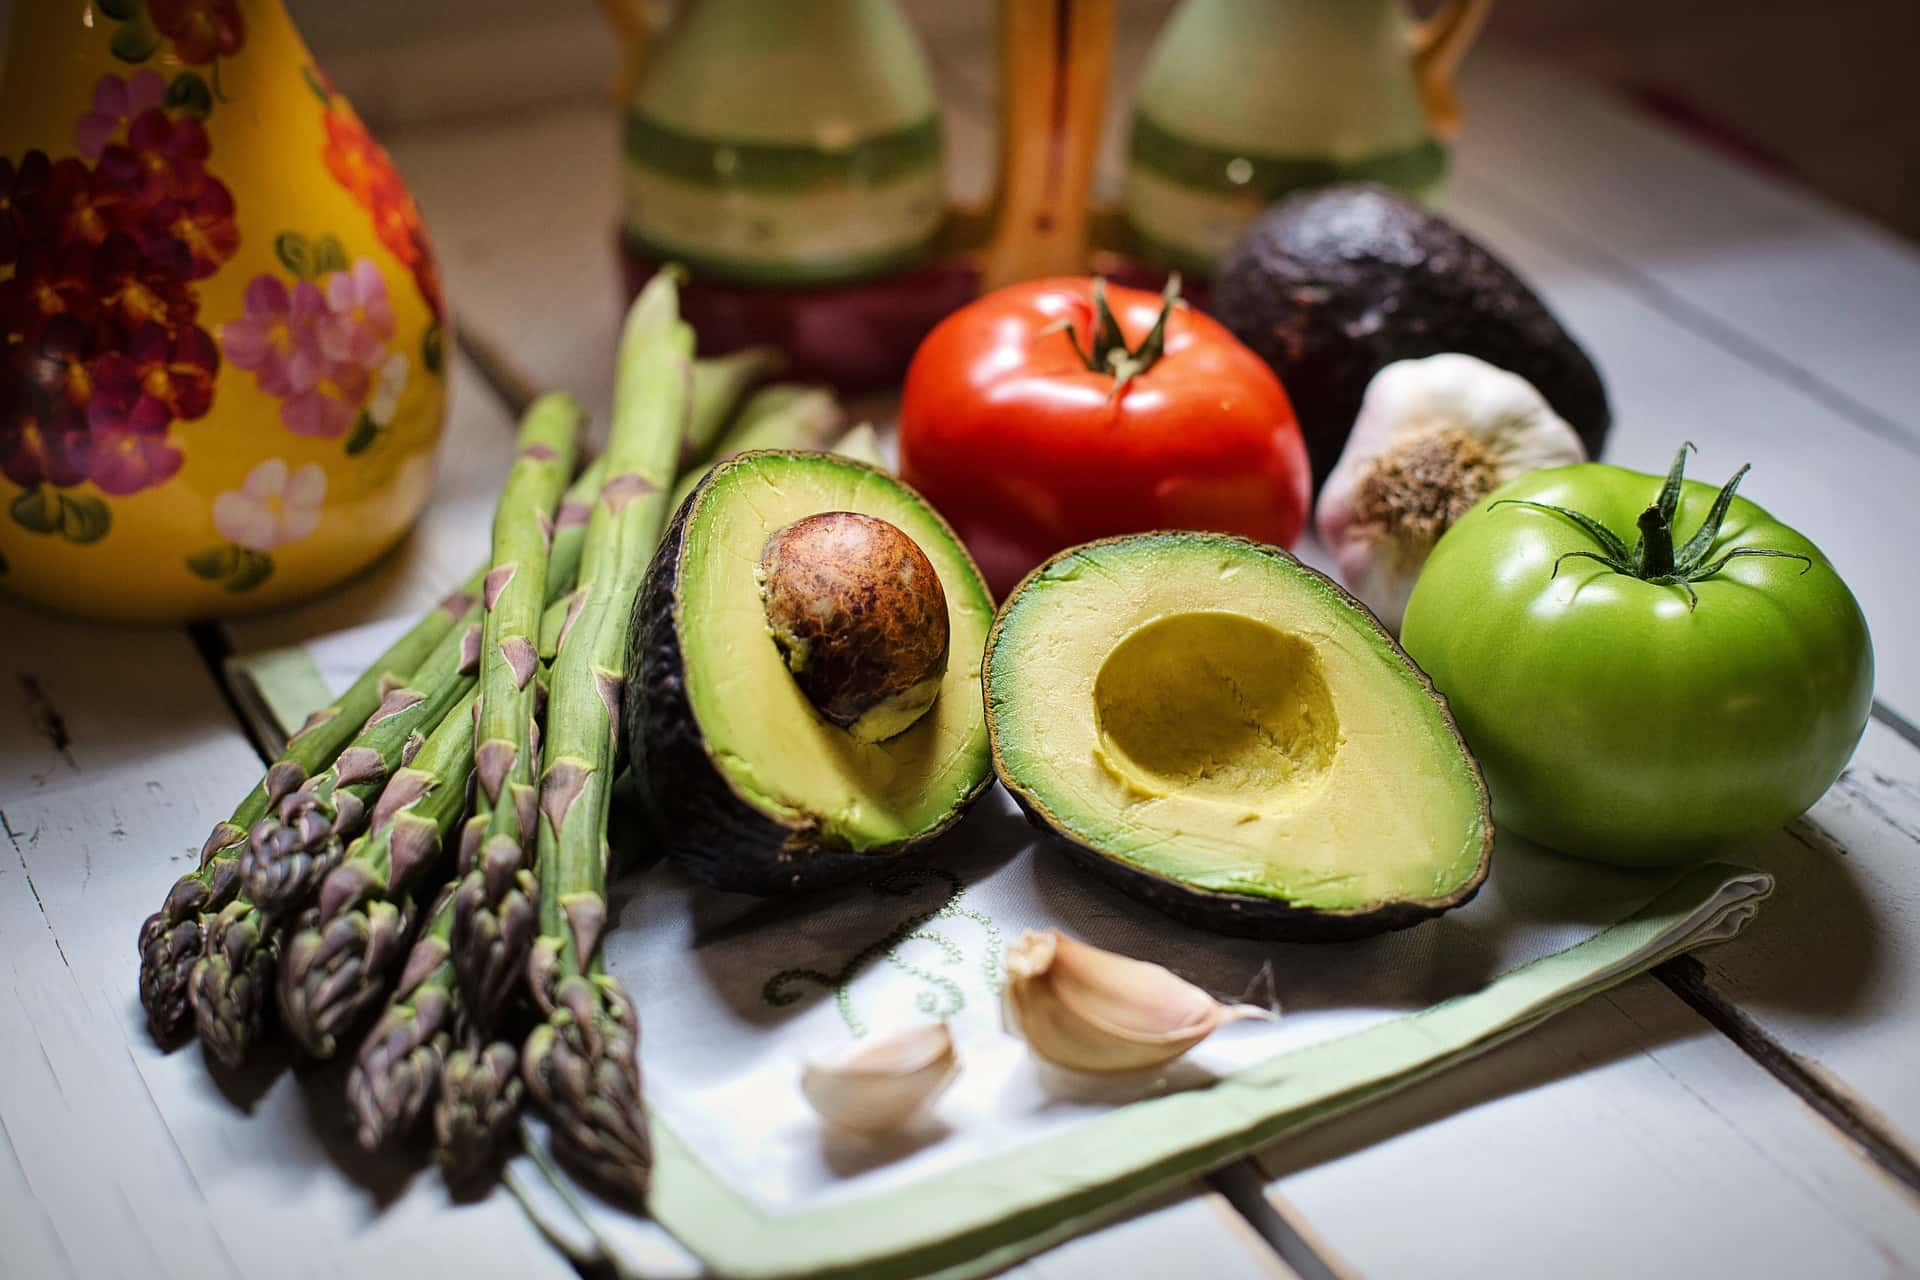 Healthy fresh vegetables: asparagus, avocado, tomato and garlic